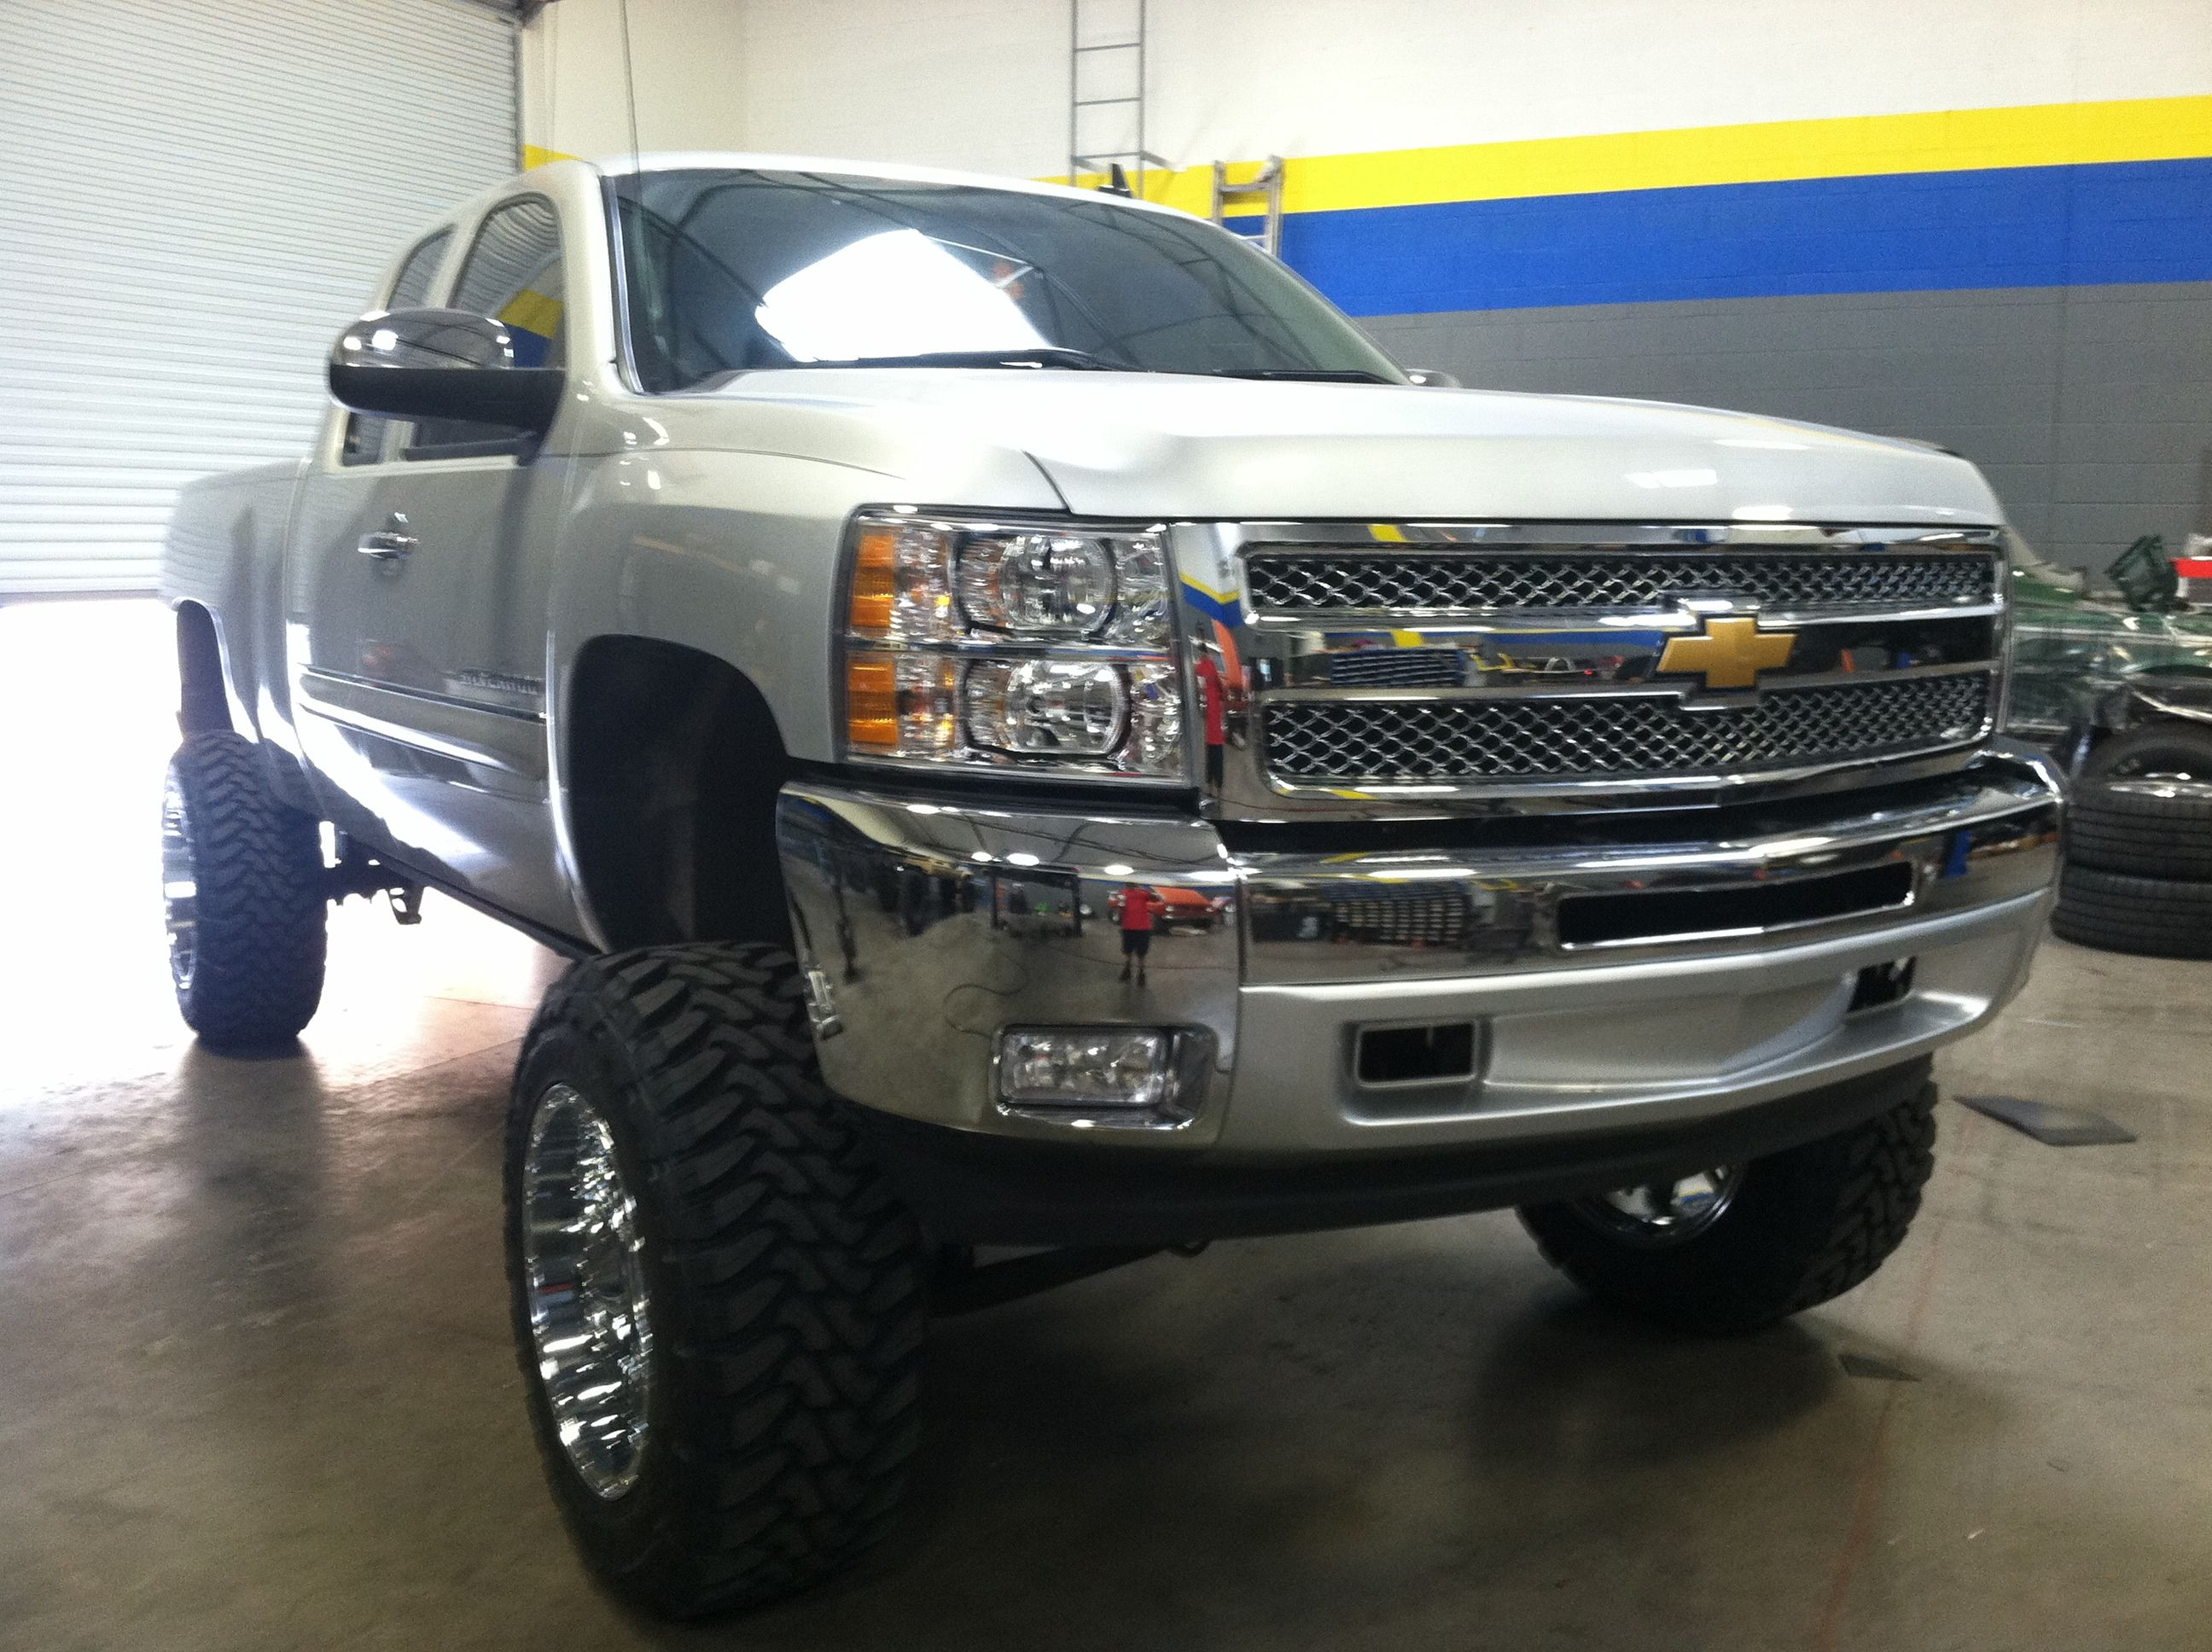 6 Inch Lift Kit For Chevy Silverado 1500 >> 2012 Chevy 1500 6inch Lift Kit With 3 Inch Body Lift 35